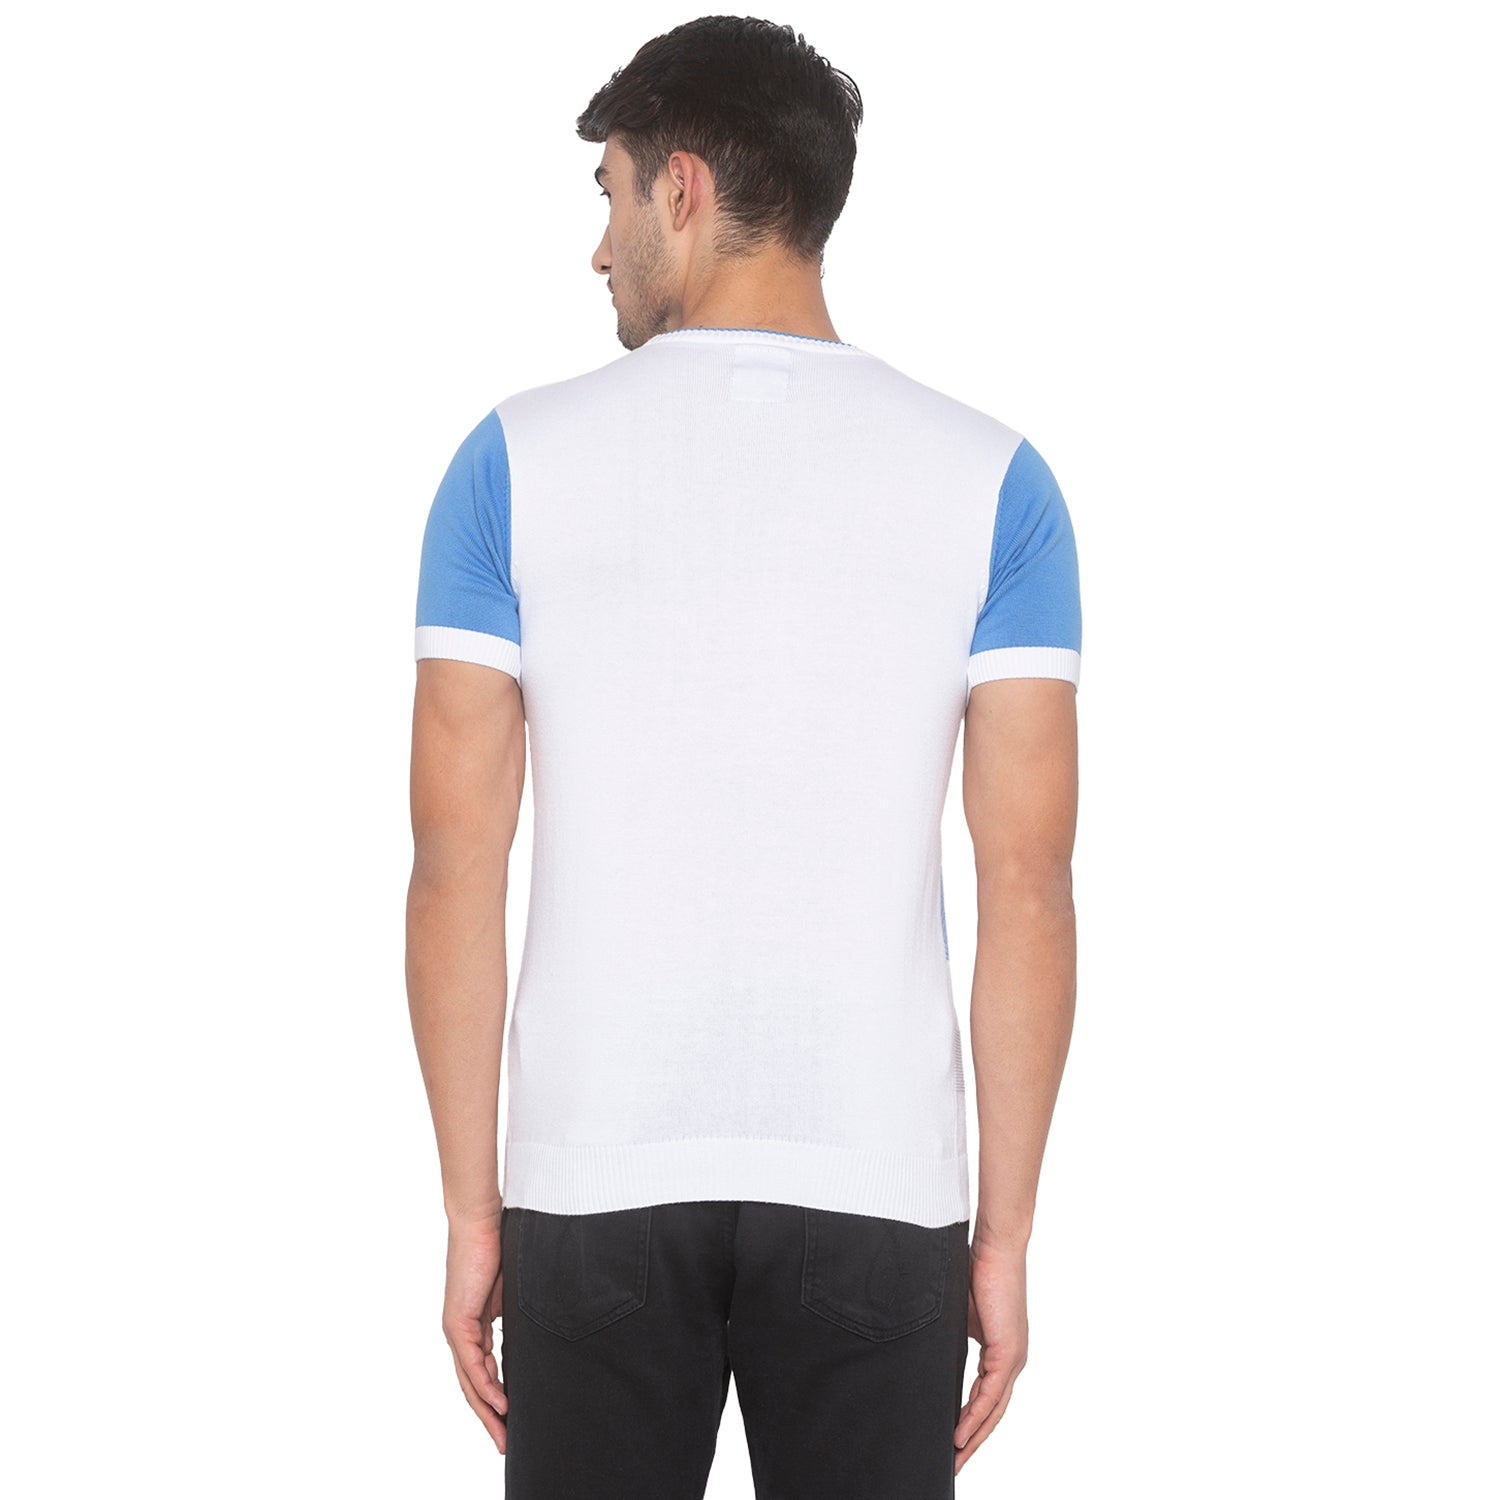 Powder Blue Solid T-Shirt-3